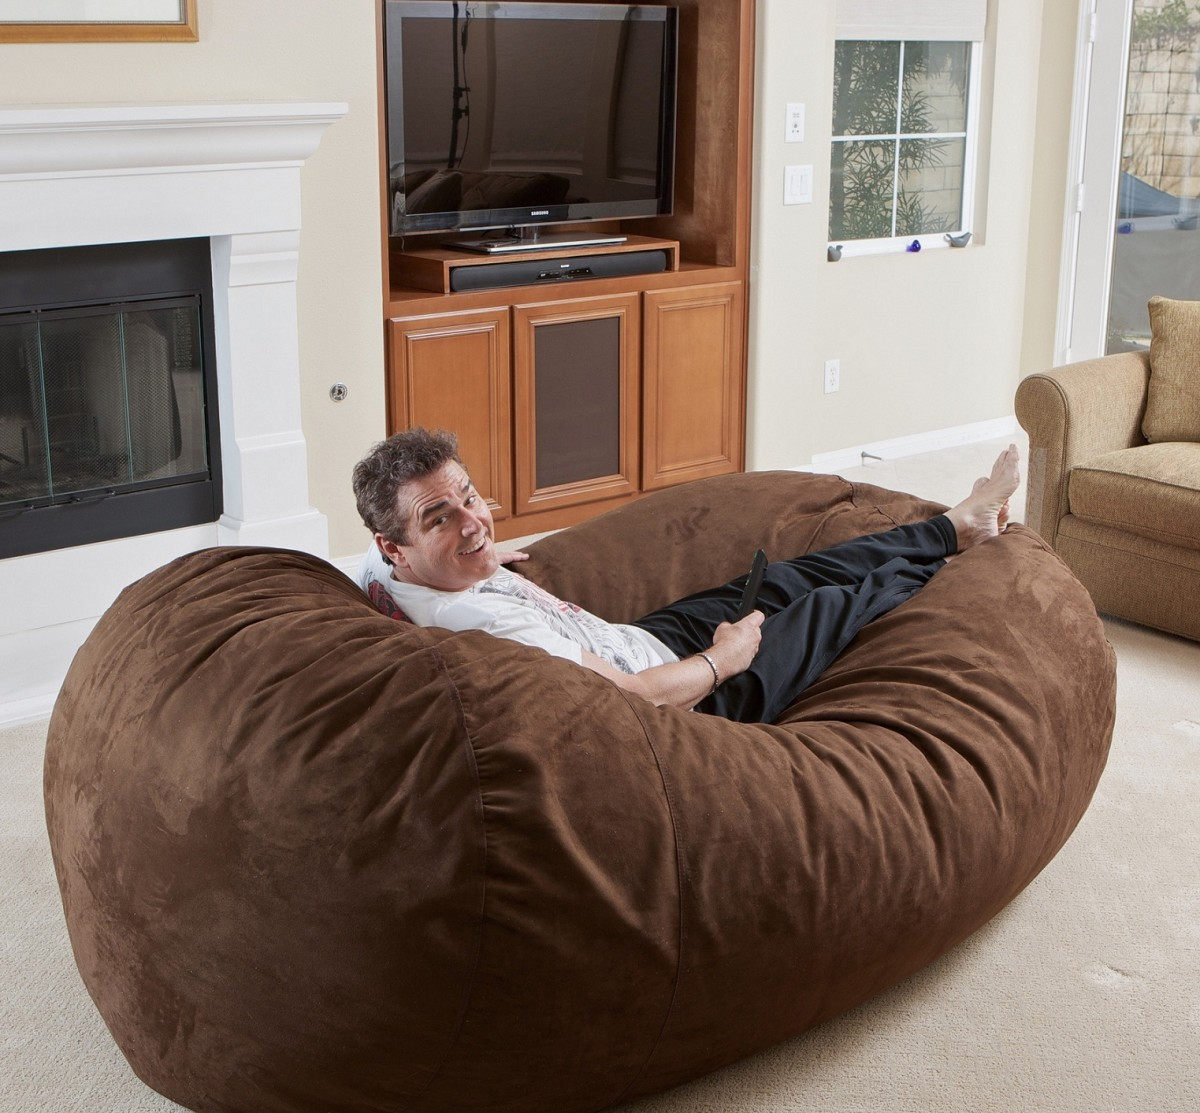 bean bag chair bed bertolini church chairs best for adults ideas with images